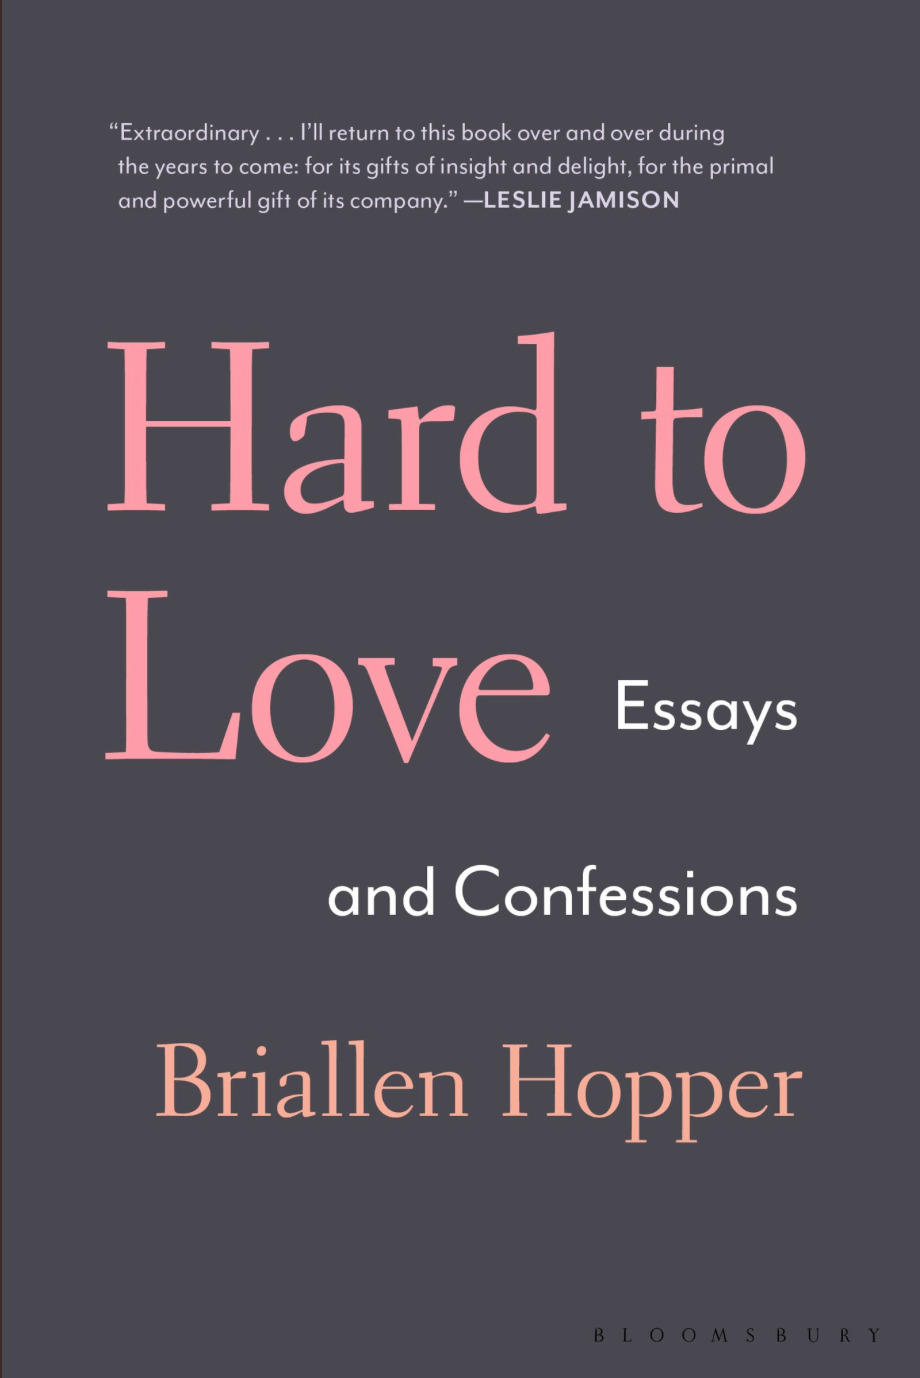 hard to love essays and confessions by briallen hopper